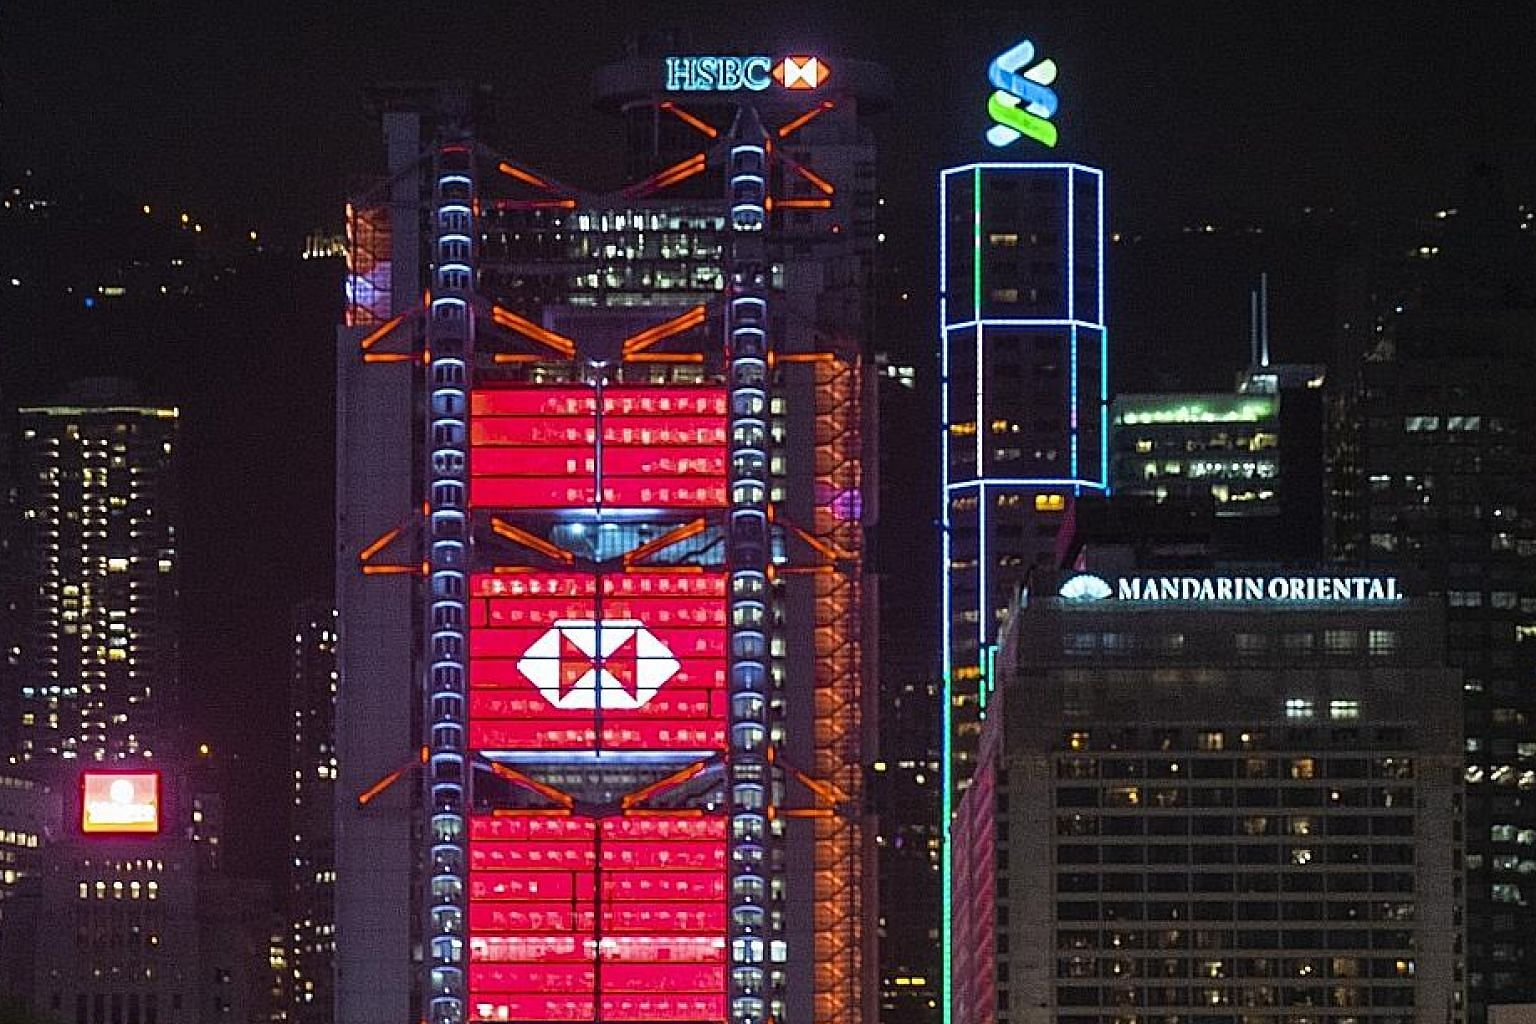 The HSBC and Standard Chartered buildings in Hong Kong. The two banks were among some 90 lenders named in leaked documents that shed light on potentially dubious money transfers worth about US$2 trillion (S$2.7 trillion) between 1999 and 2017. PHOTO: